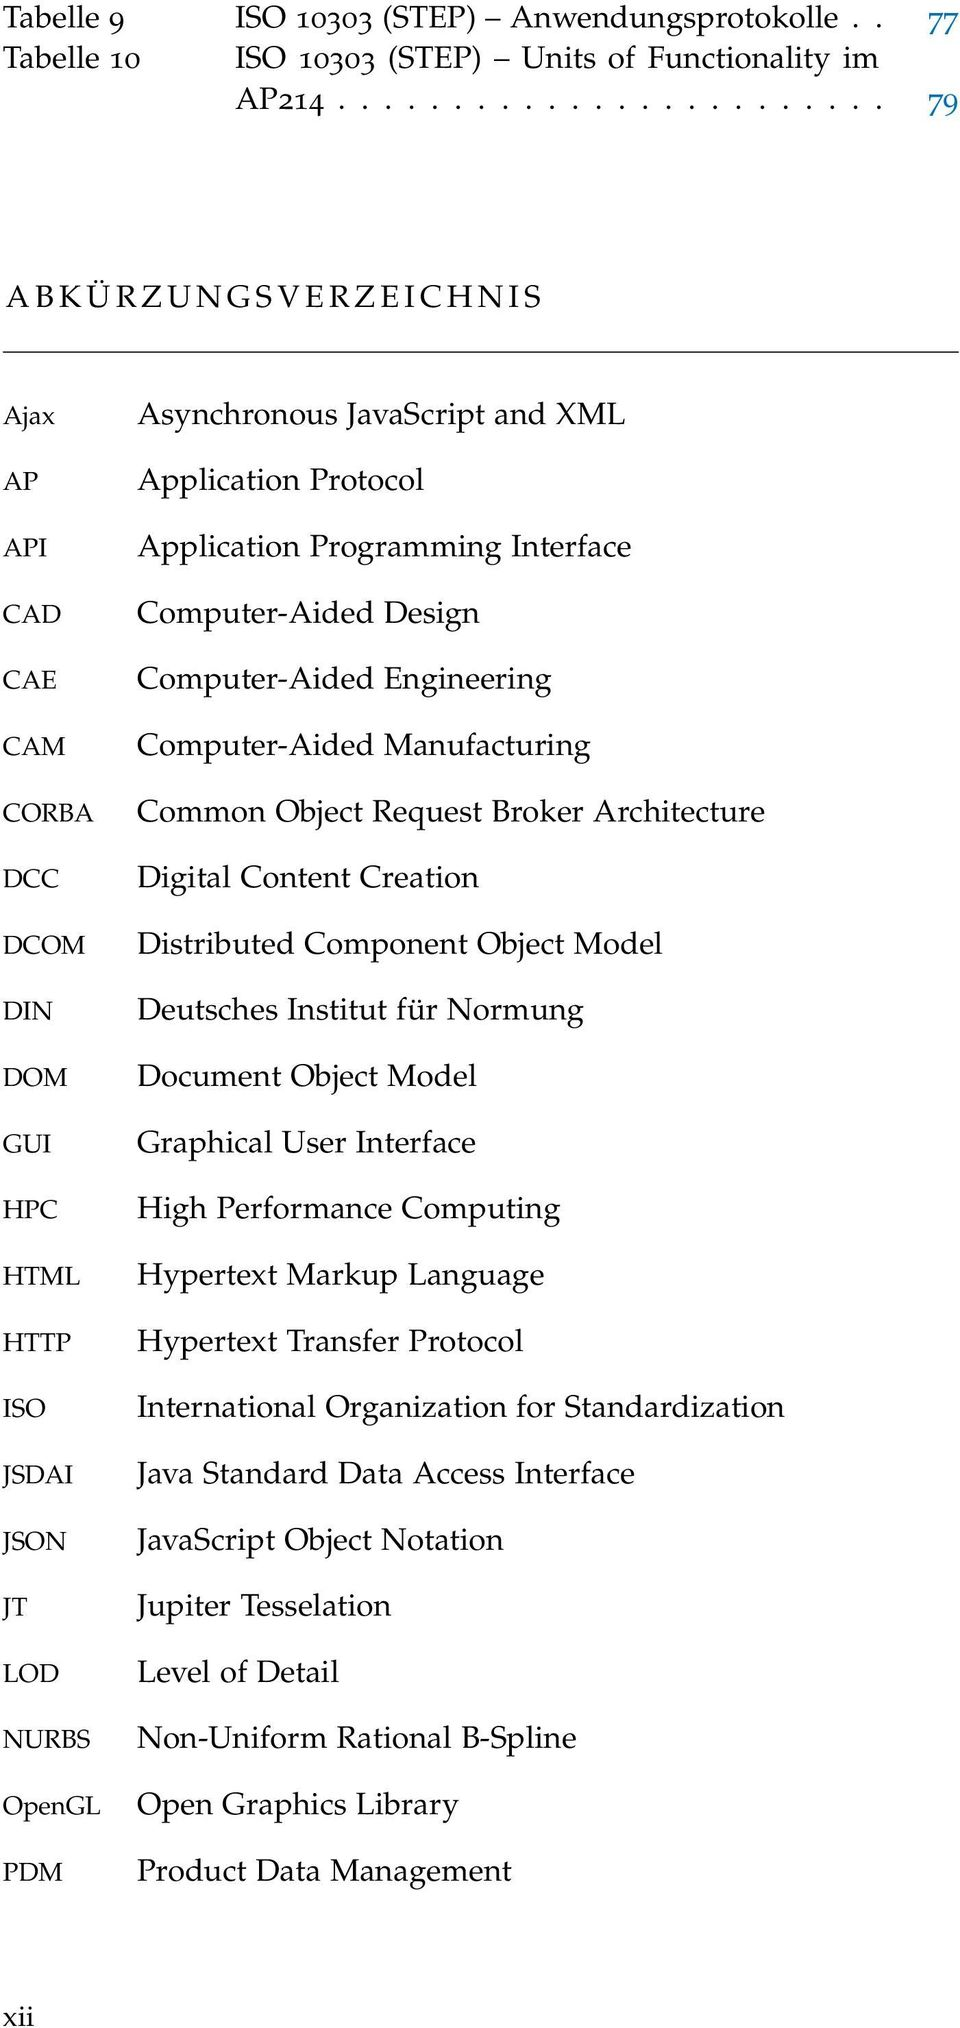 and XML Application Protocol Application Programming Interface Computer-Aided Design Computer-Aided Engineering Computer-Aided Manufacturing Common Object Request Broker Architecture Digital Content